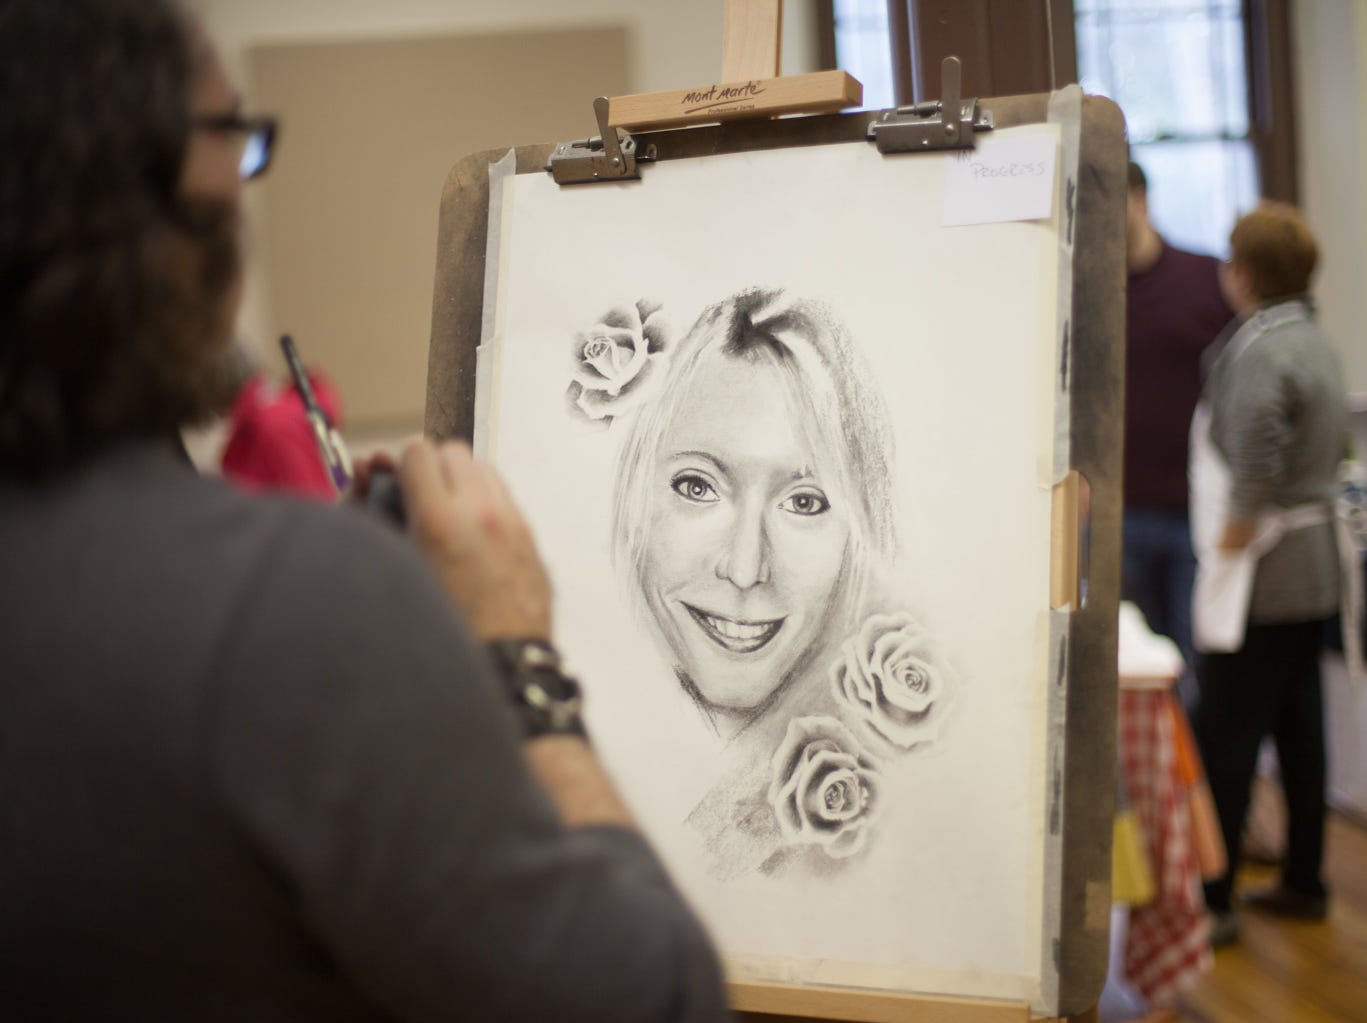 The First Presbyterian Church hosted a local artists' exhibition where artists sold their wares and some took commissions for portraits on Saturday, Dec. 1, 2018, in Clarksville, Tenn.